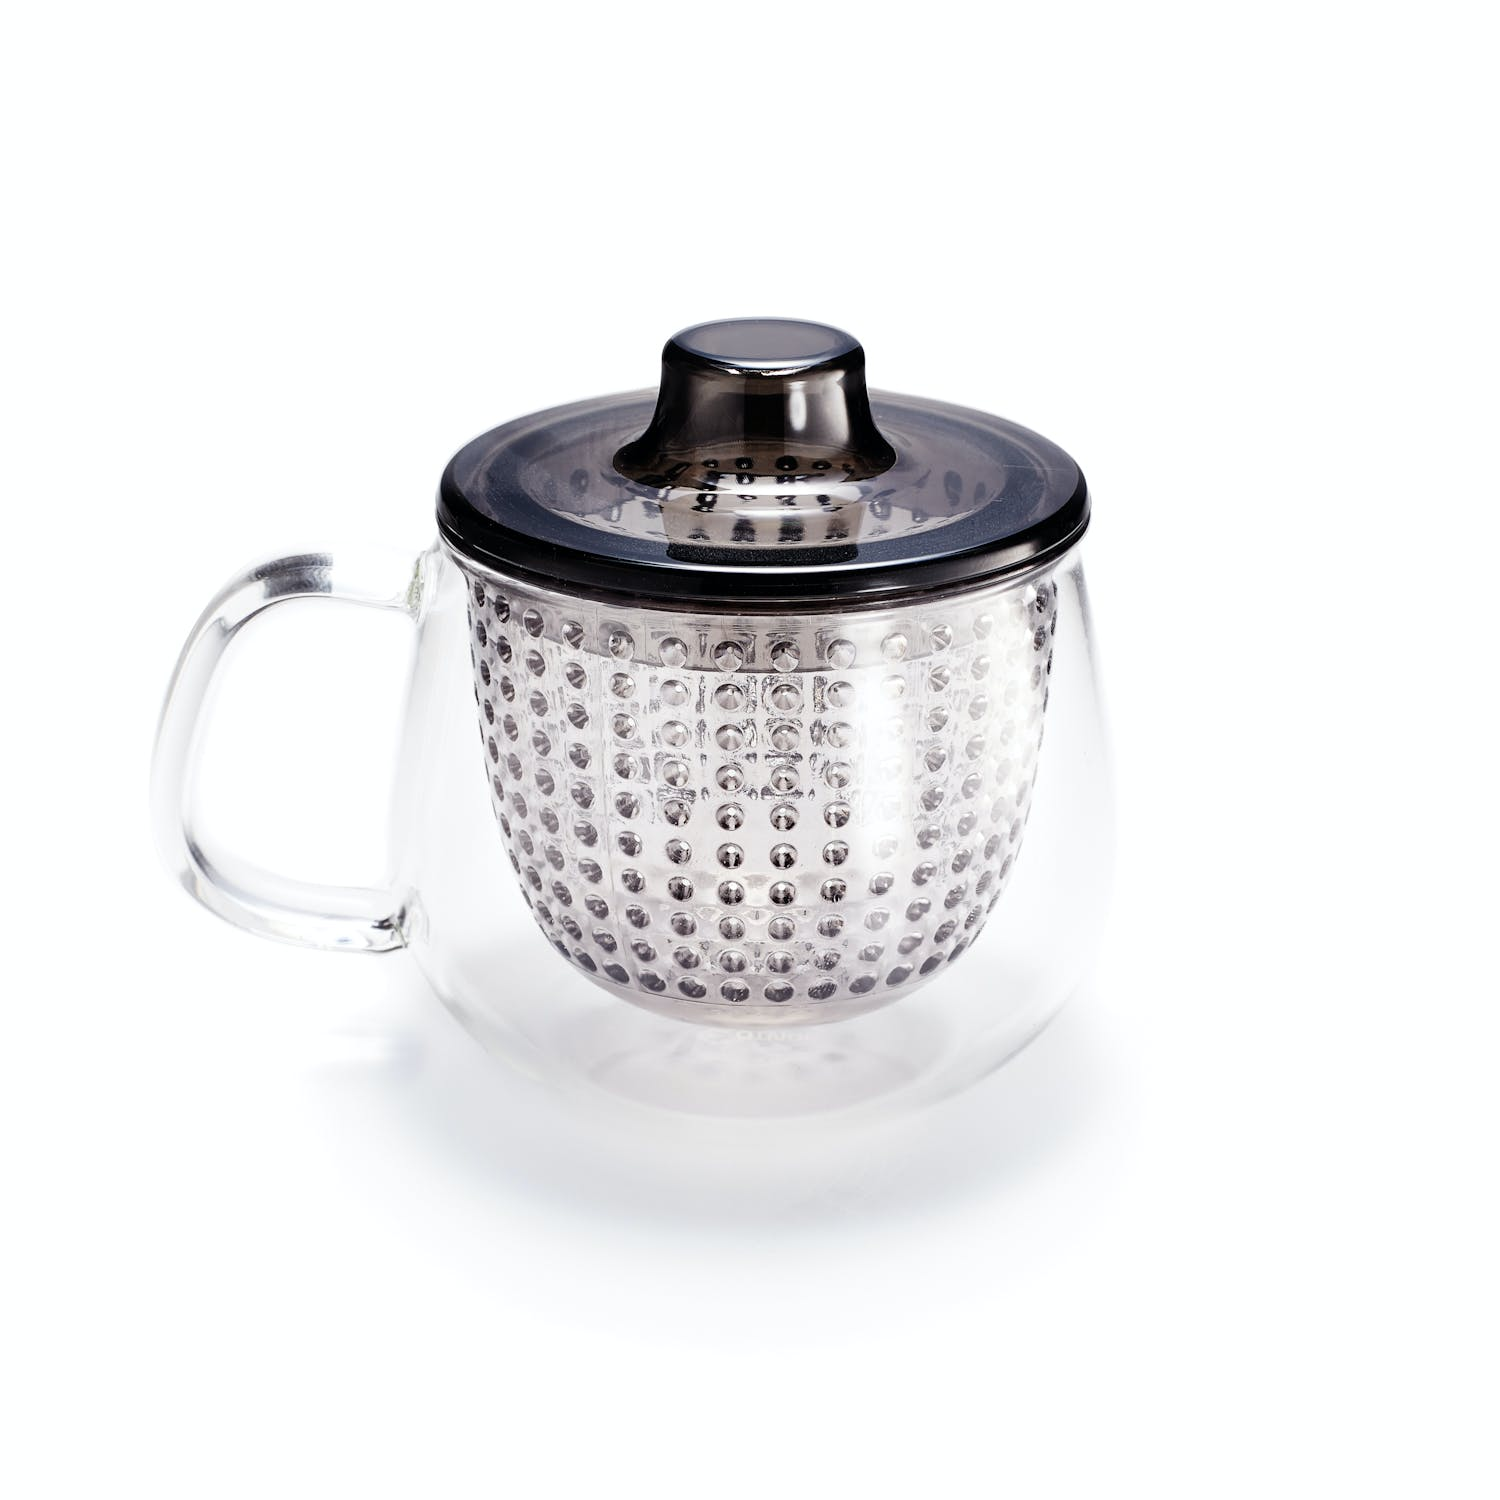 Product Image - Teapot with Lid Strainer Gray